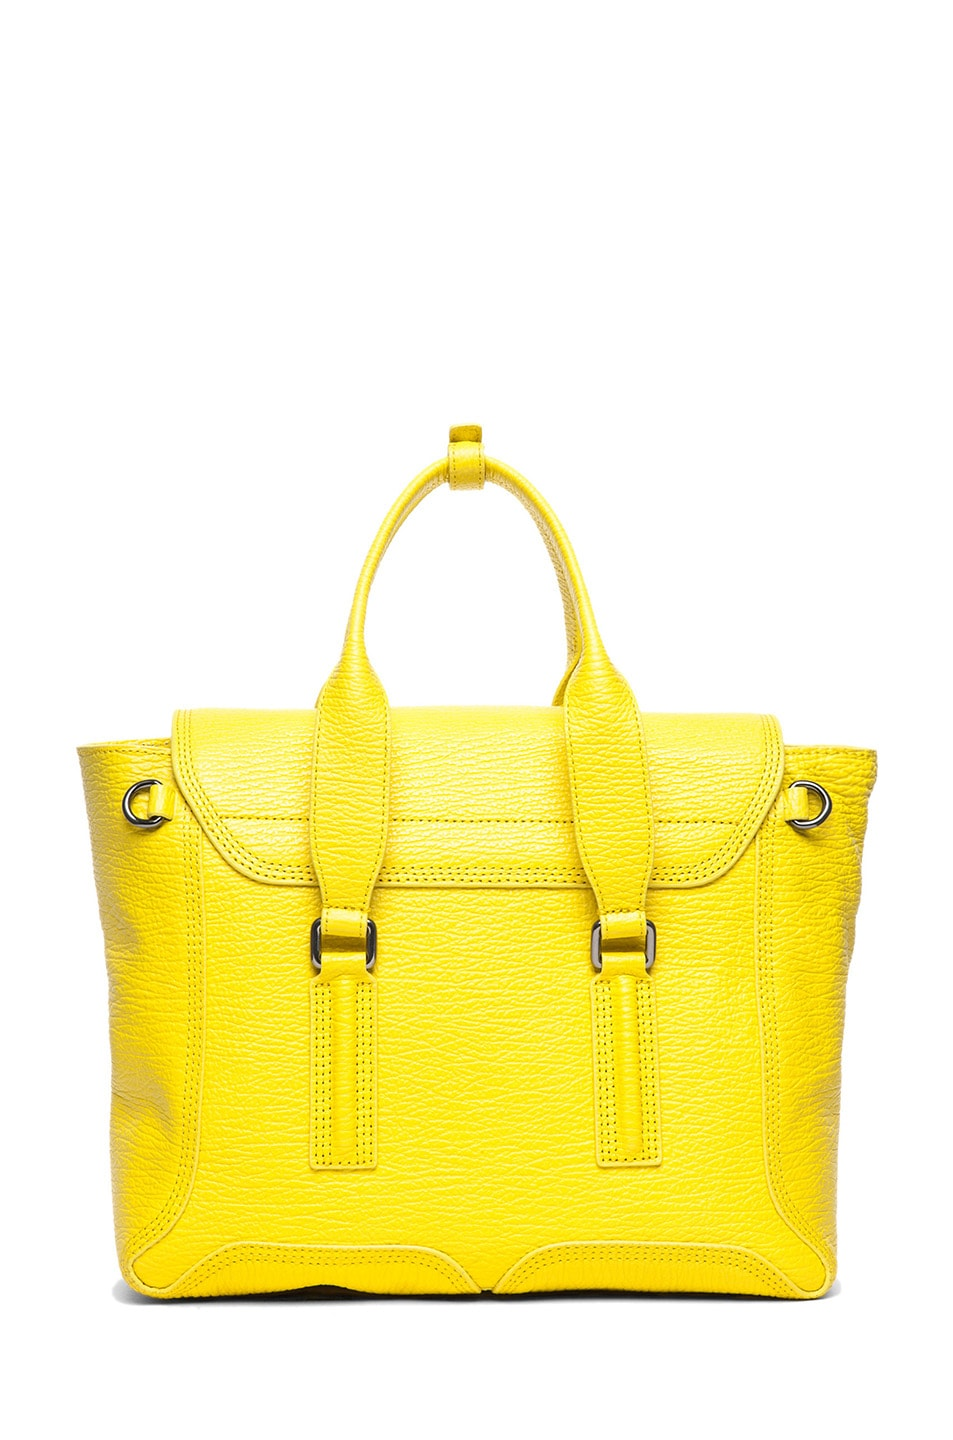 Image 2 of 3.1 phillip lim Medium Pashli Shark Embossed Satchel in Electric Yellow